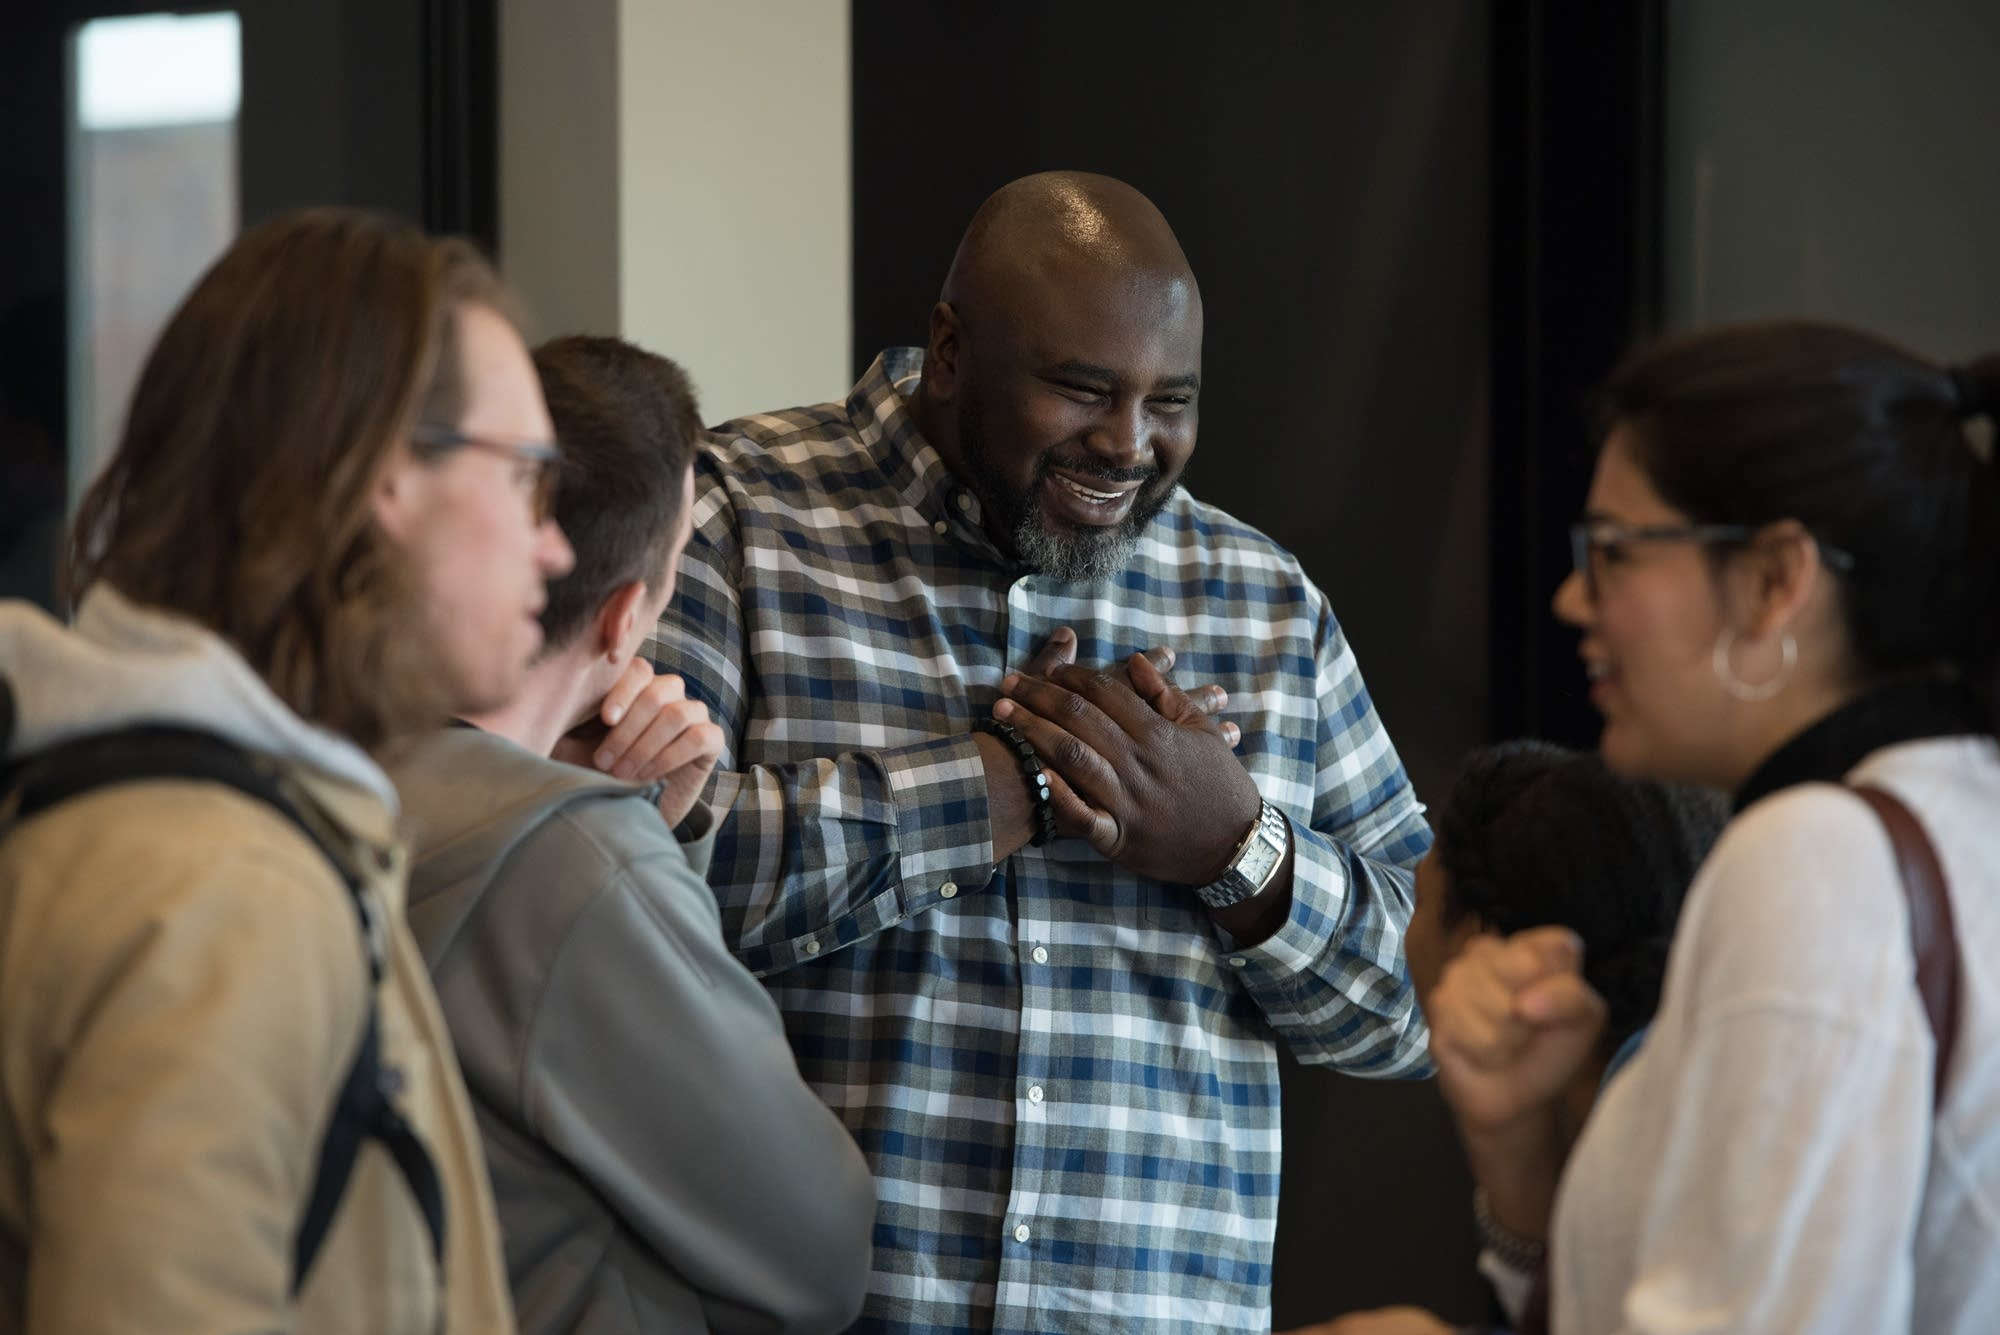 Edrin Williams, pastor of equipping and formation, talks with people.